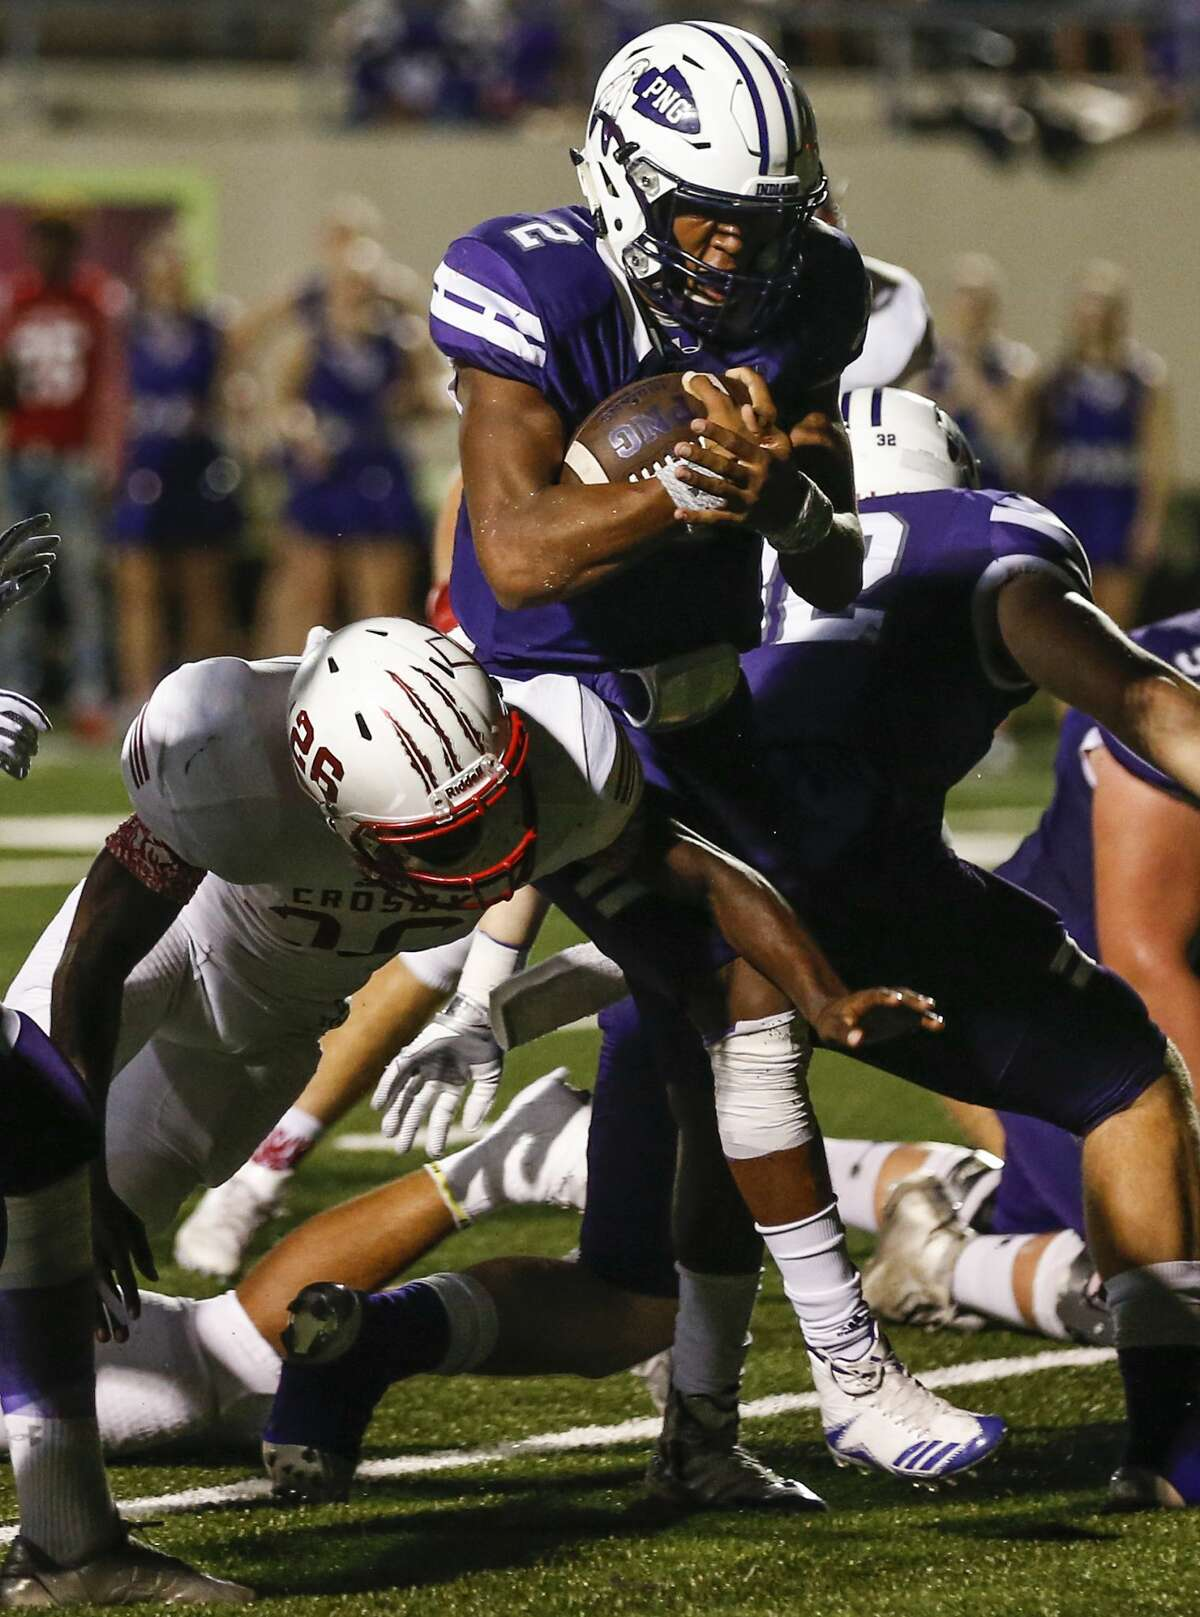 Port Neches-Groves quarterback Roschon Johnson (20 runs past Crosby cornerback An'dre Bruno (26) for a touchdown during the second quarter of a Class 5A bi-district playoff football game at Stallworth Stadium on Friday, Nov. 17, 2017, in Baytown. ( Brett Coomer / Houston Chronicle )